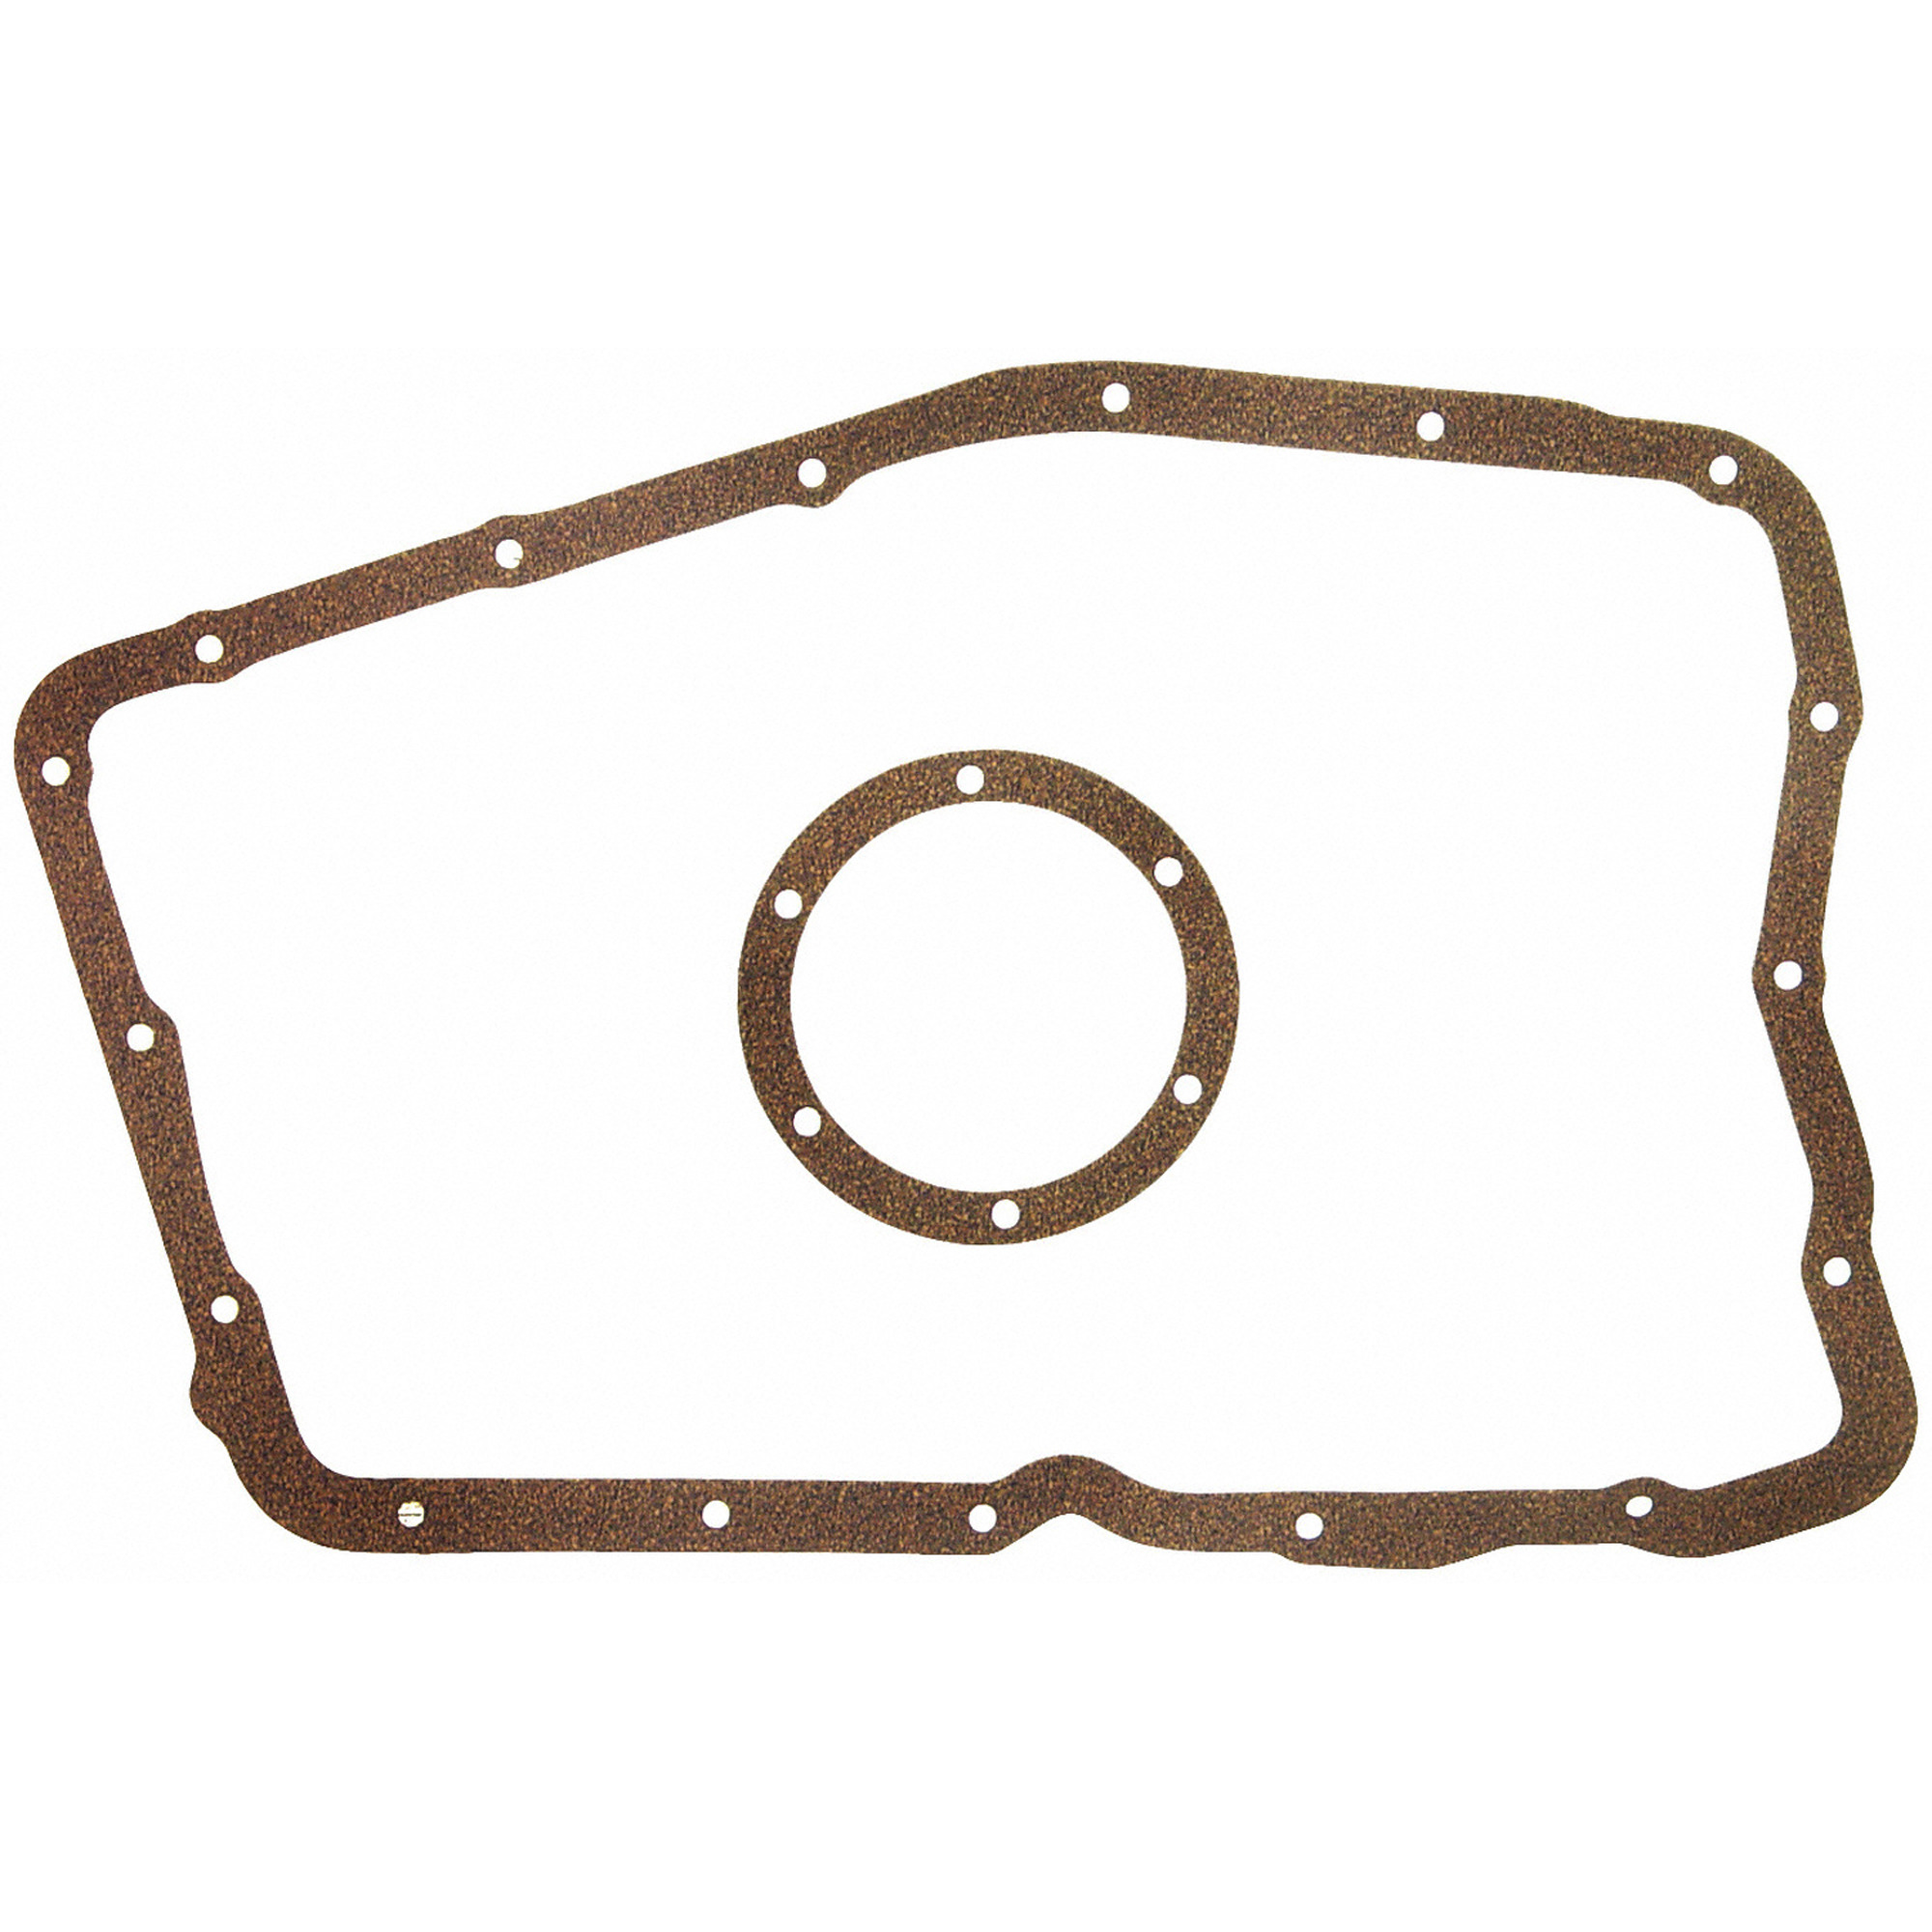 Automatic Transmission Side Cover Gasket